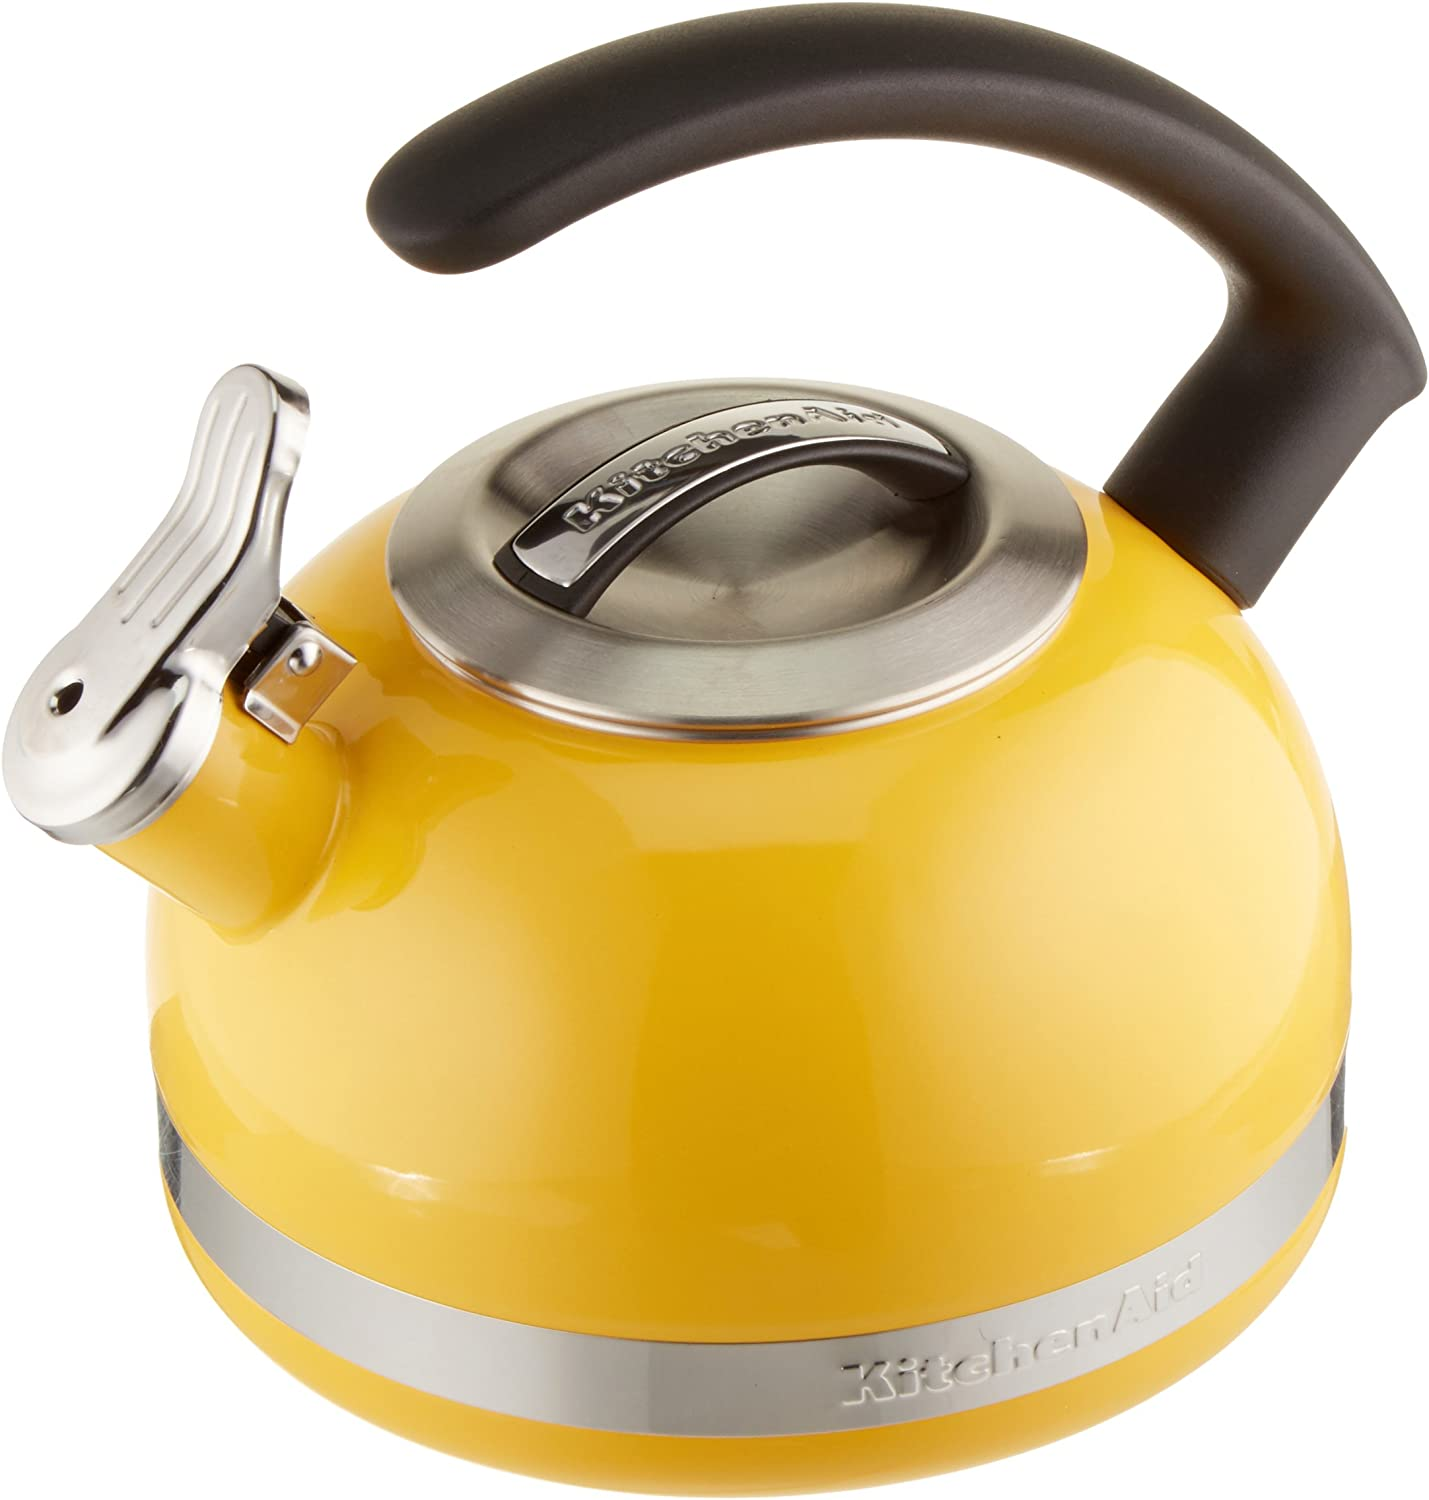 KitchenAid KTEN20CBER 2.0 Quart Kettle